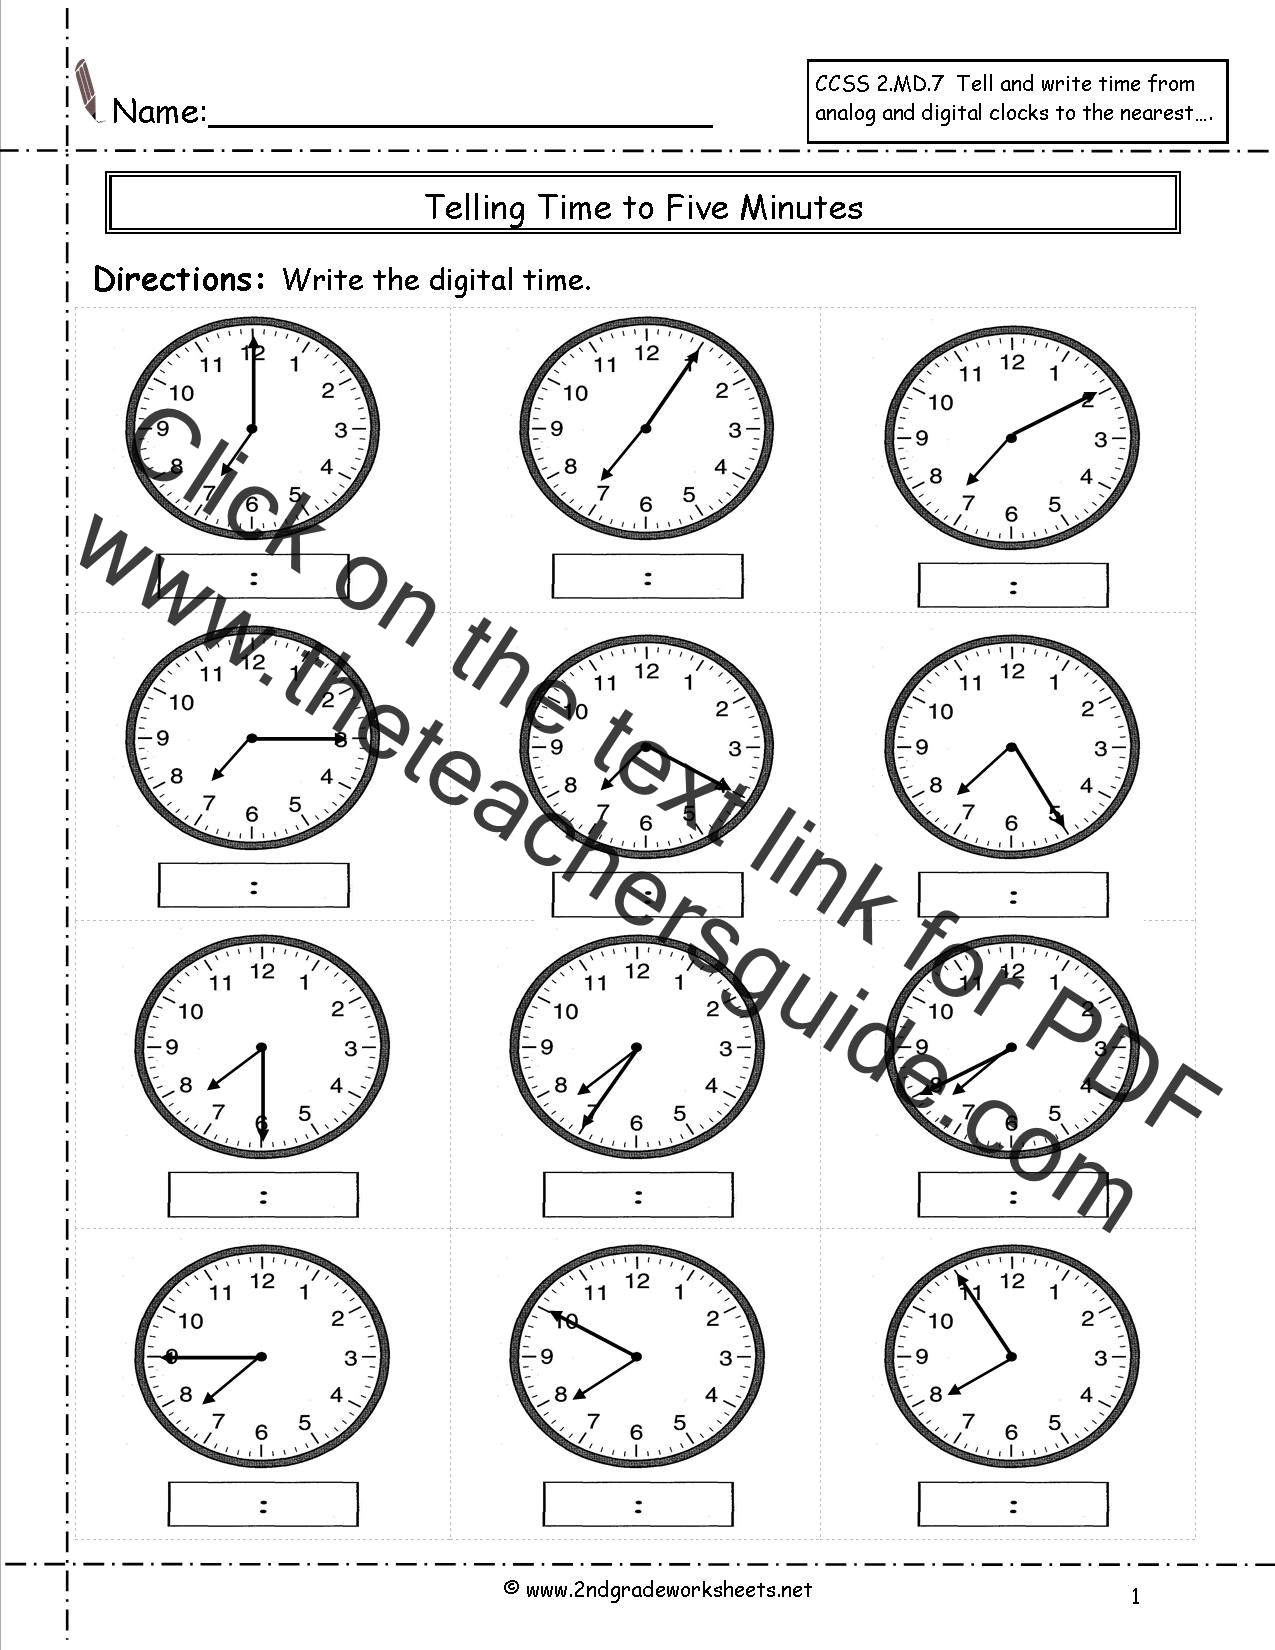 Index Of Tellingtime